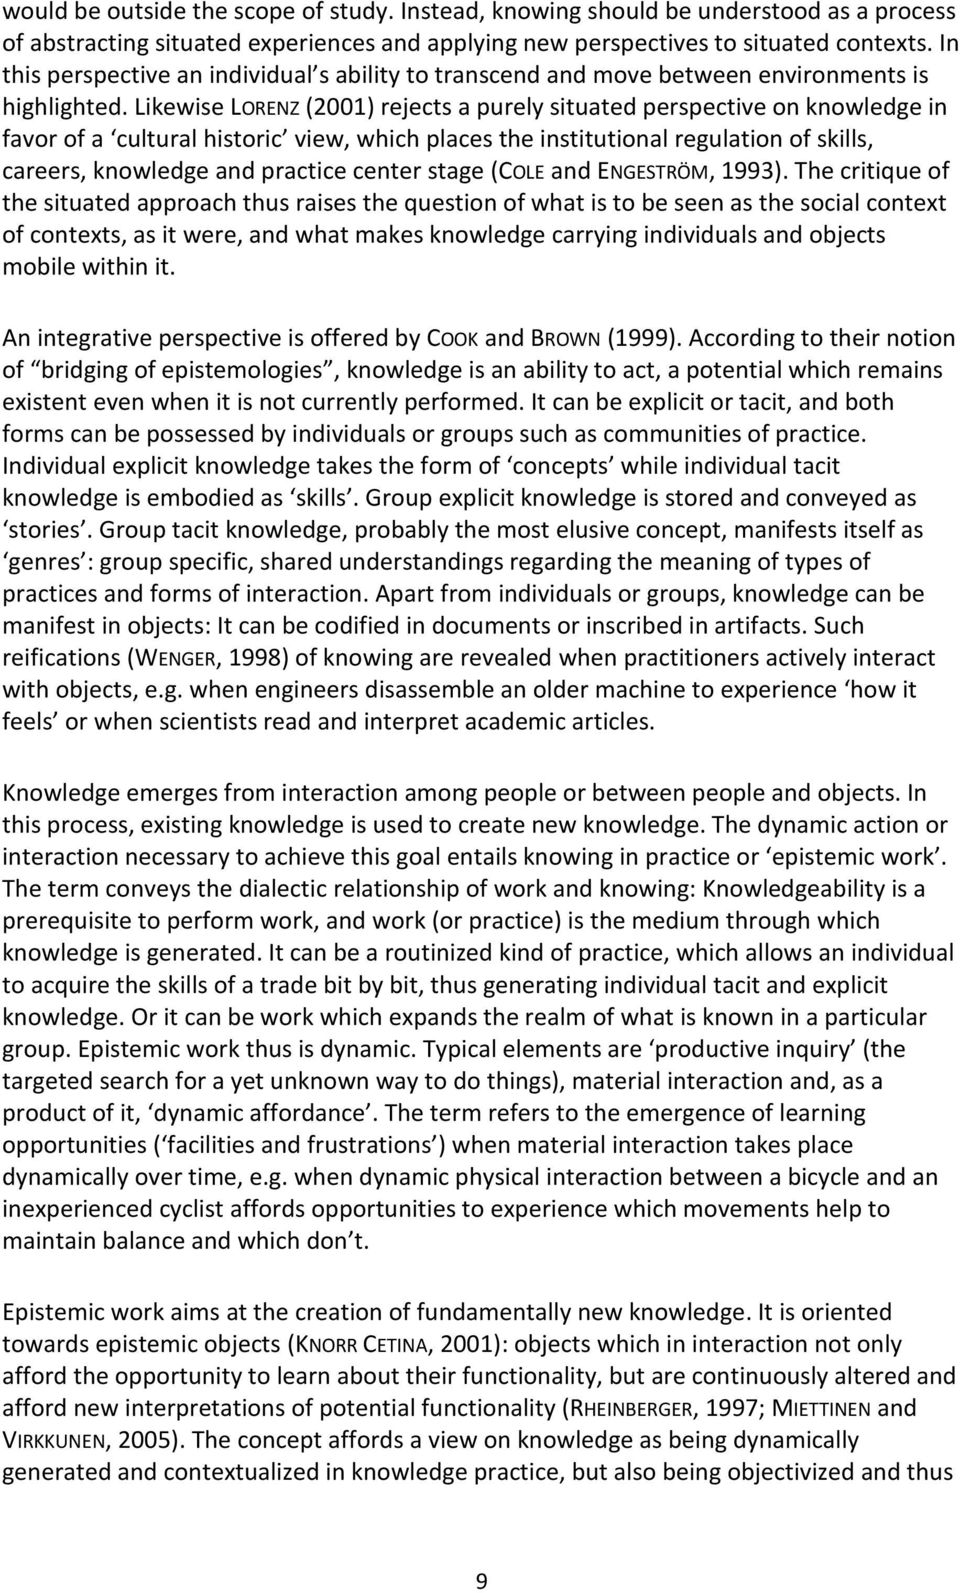 Likewise LORENZ (2001) rejects a purely situated perspective on knowledge in favor of a cultural historic view, which places the institutional regulation of skills, careers, knowledge and practice